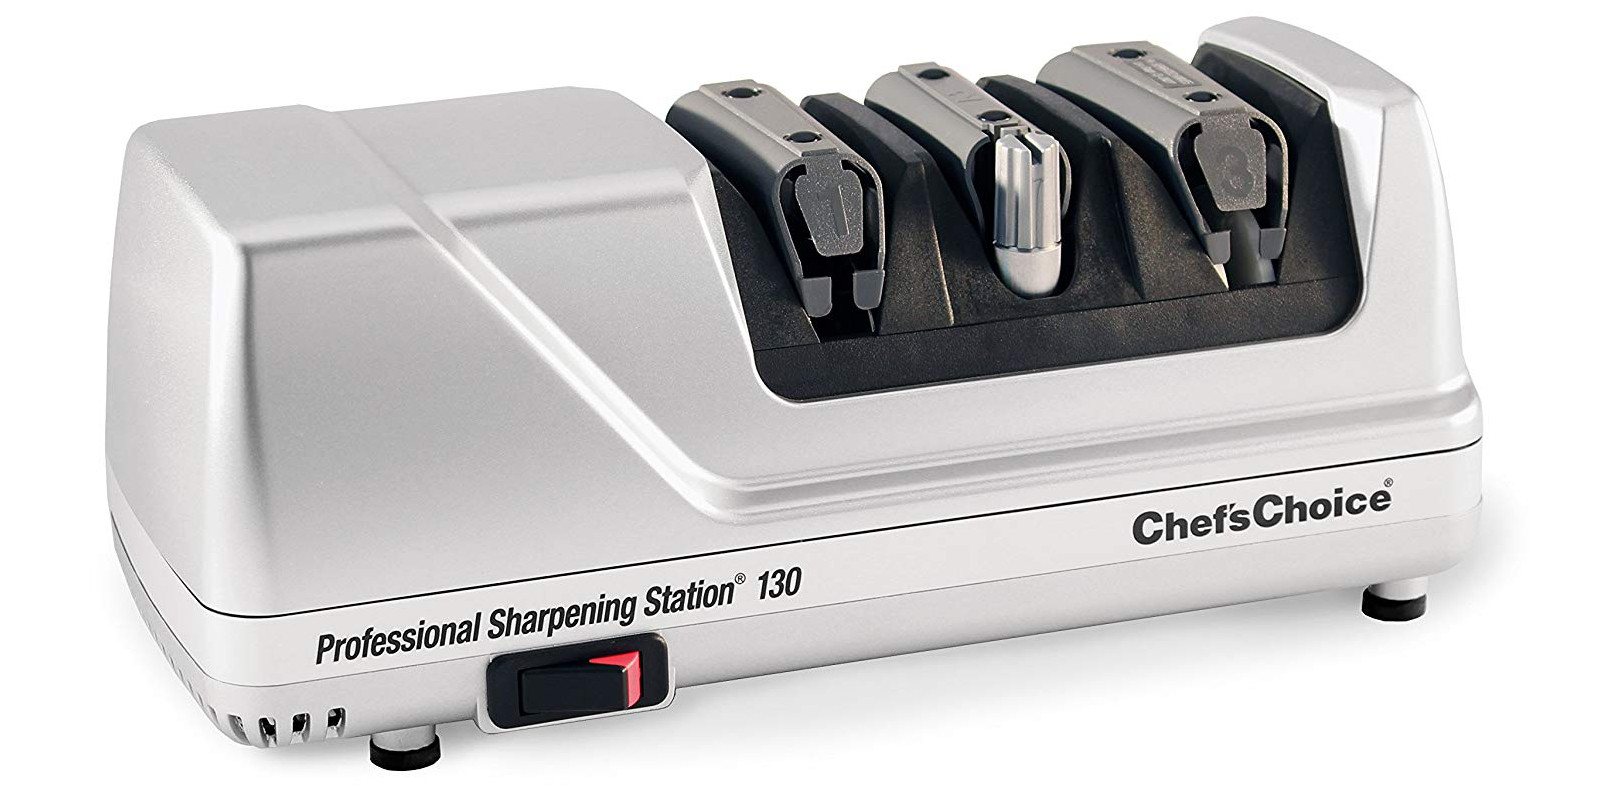 Chef'sChoice Pro Electric Knife Sharpener now up to $70 off: $80 Prime shipped